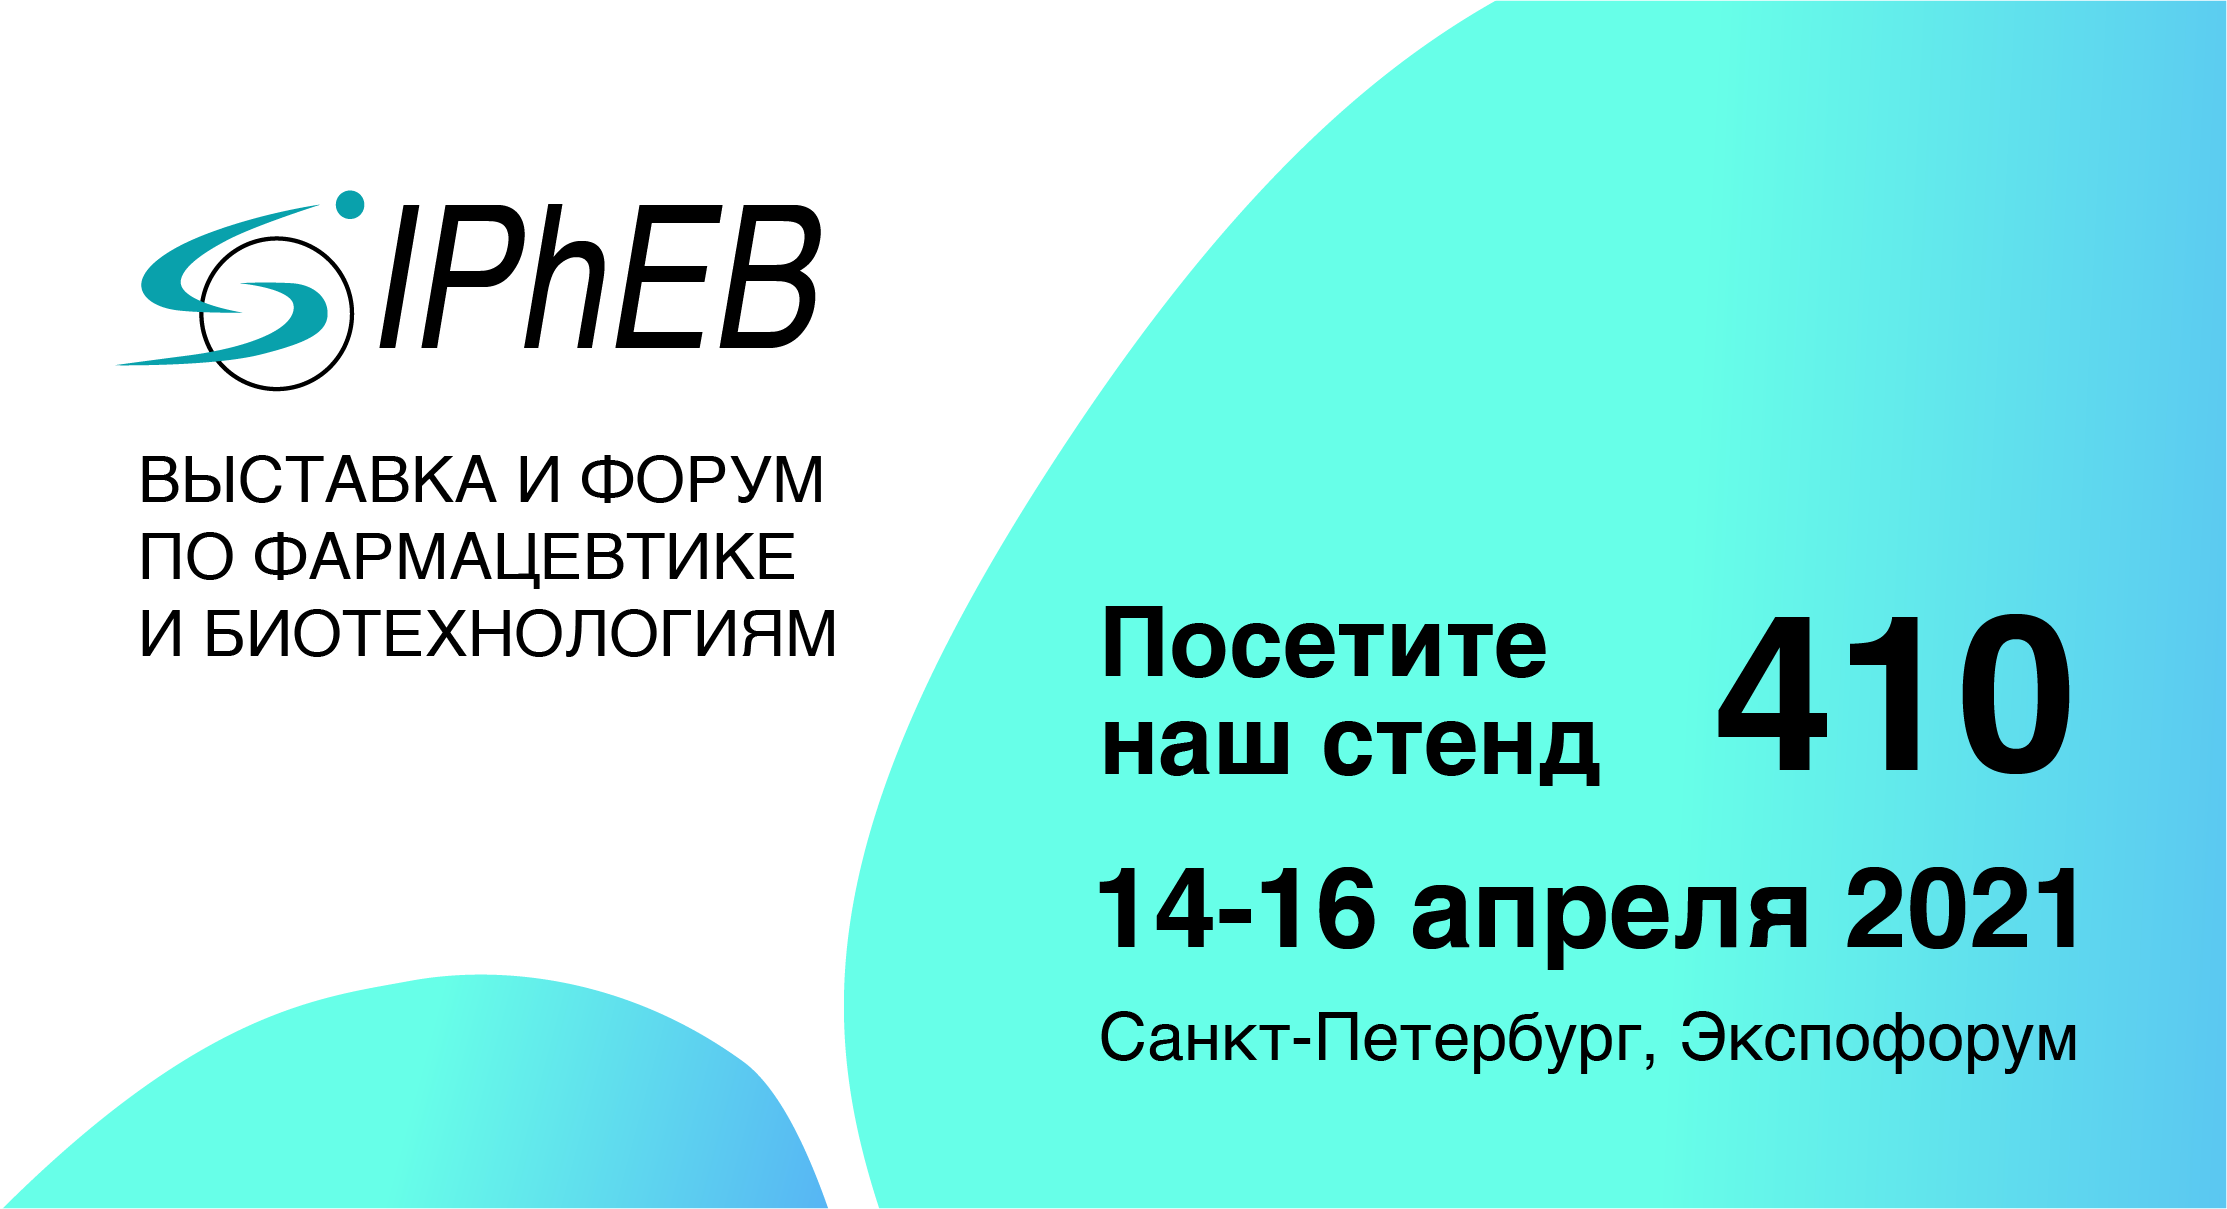 BRIGHT WAY GROUP invites you to visit our stand at the International Exhibition and Forum on Pharmaceuticals and Biotechnology PhEB Russia, St. Petersburg